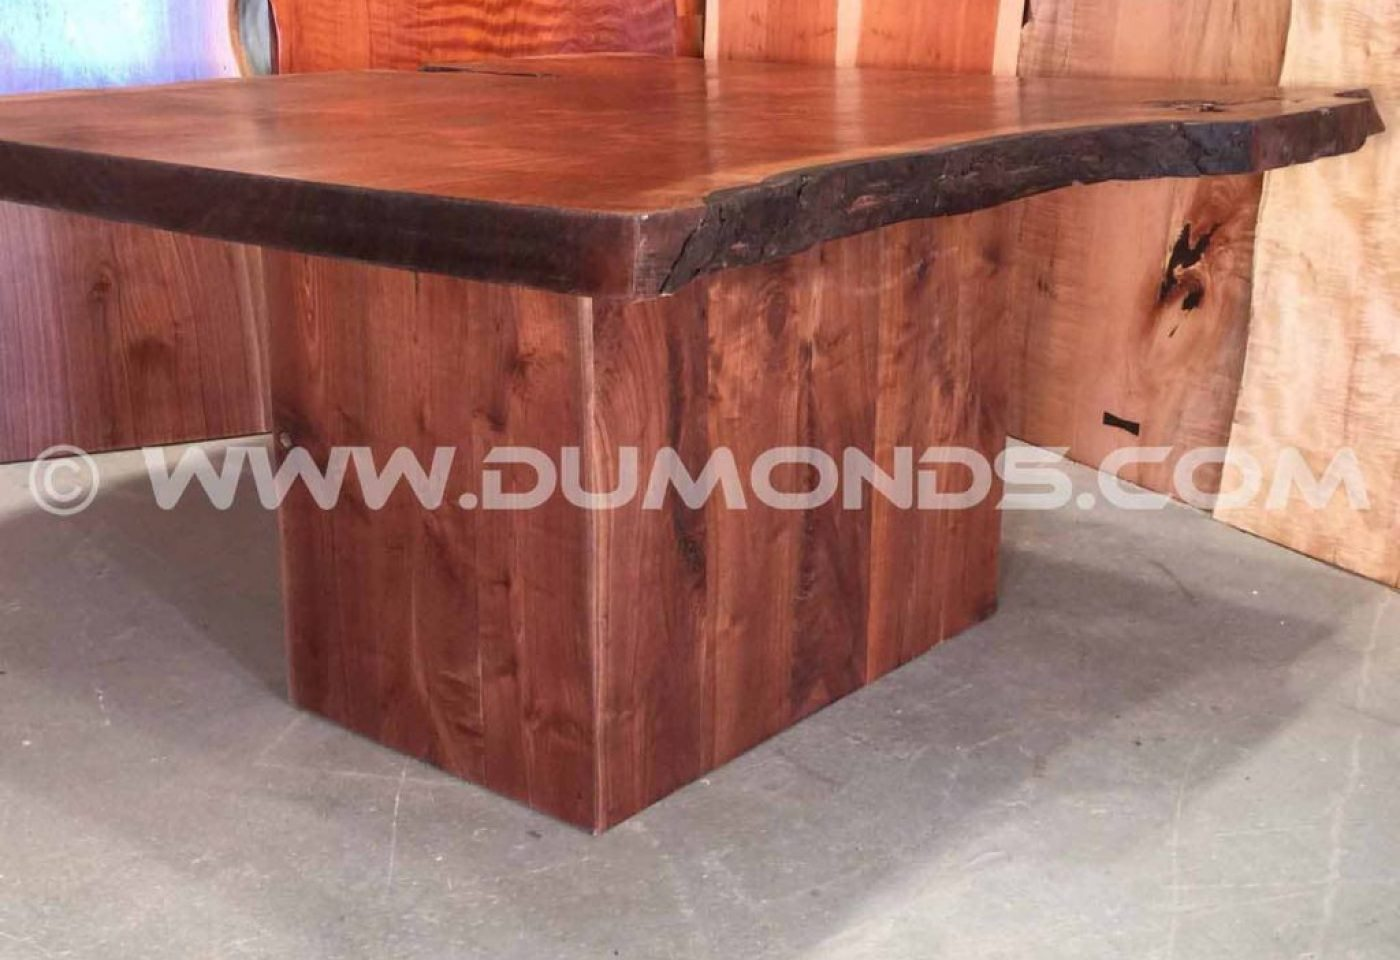 BOXED WALUT TABLE BASE UNDER A CLARO WALNUT LIVE EDGE TABLE TOP